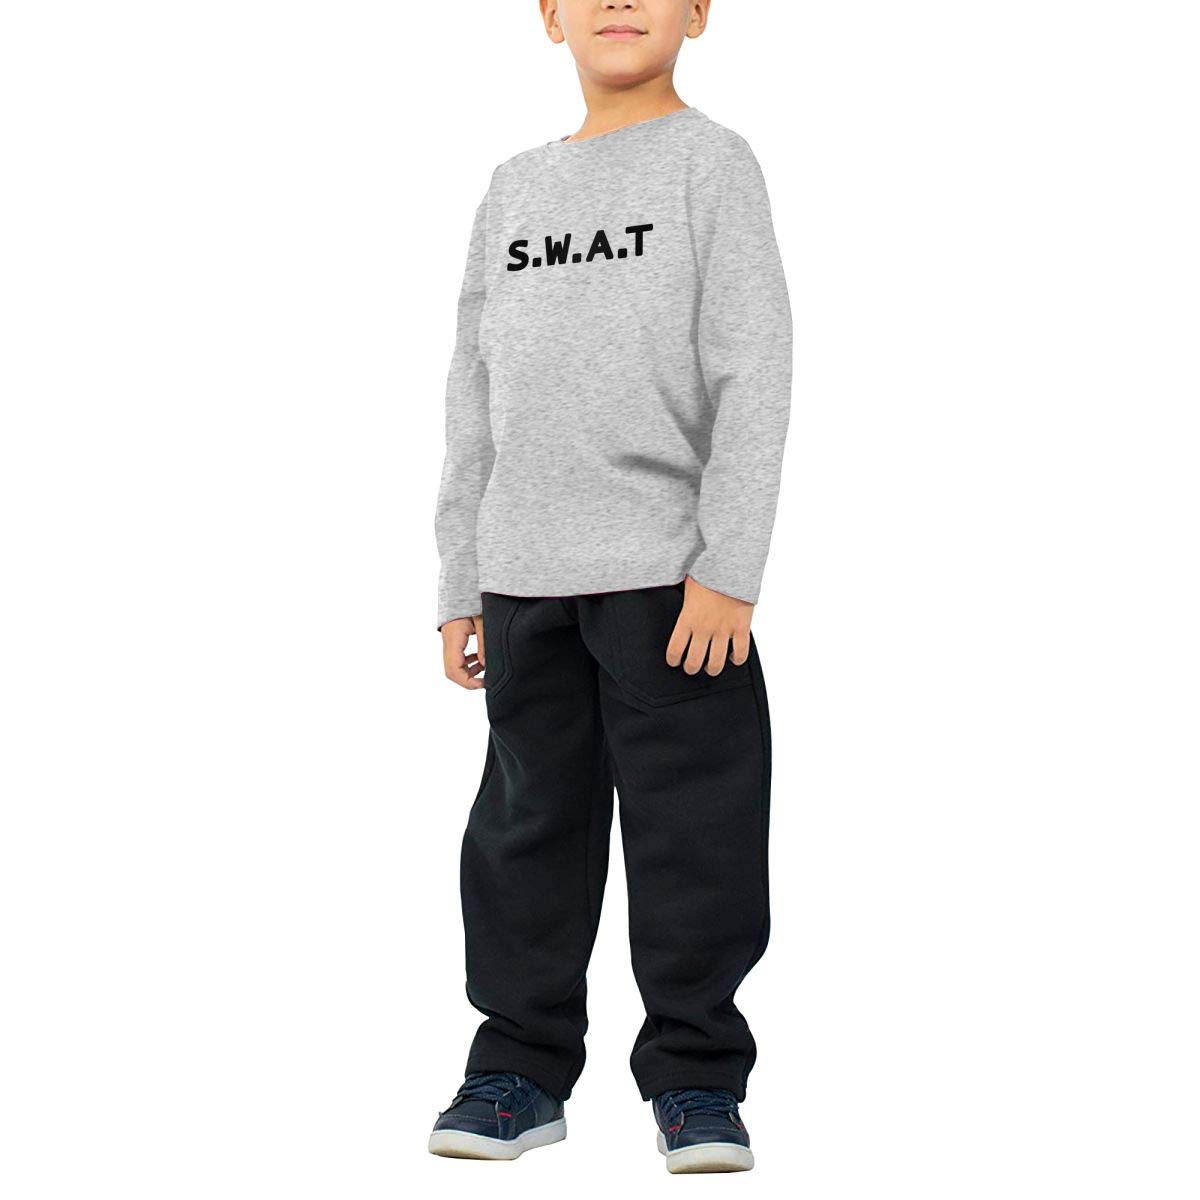 SWAT Child Personalized Long-Sleeved Shirt Cotton Round Collar T Shirts